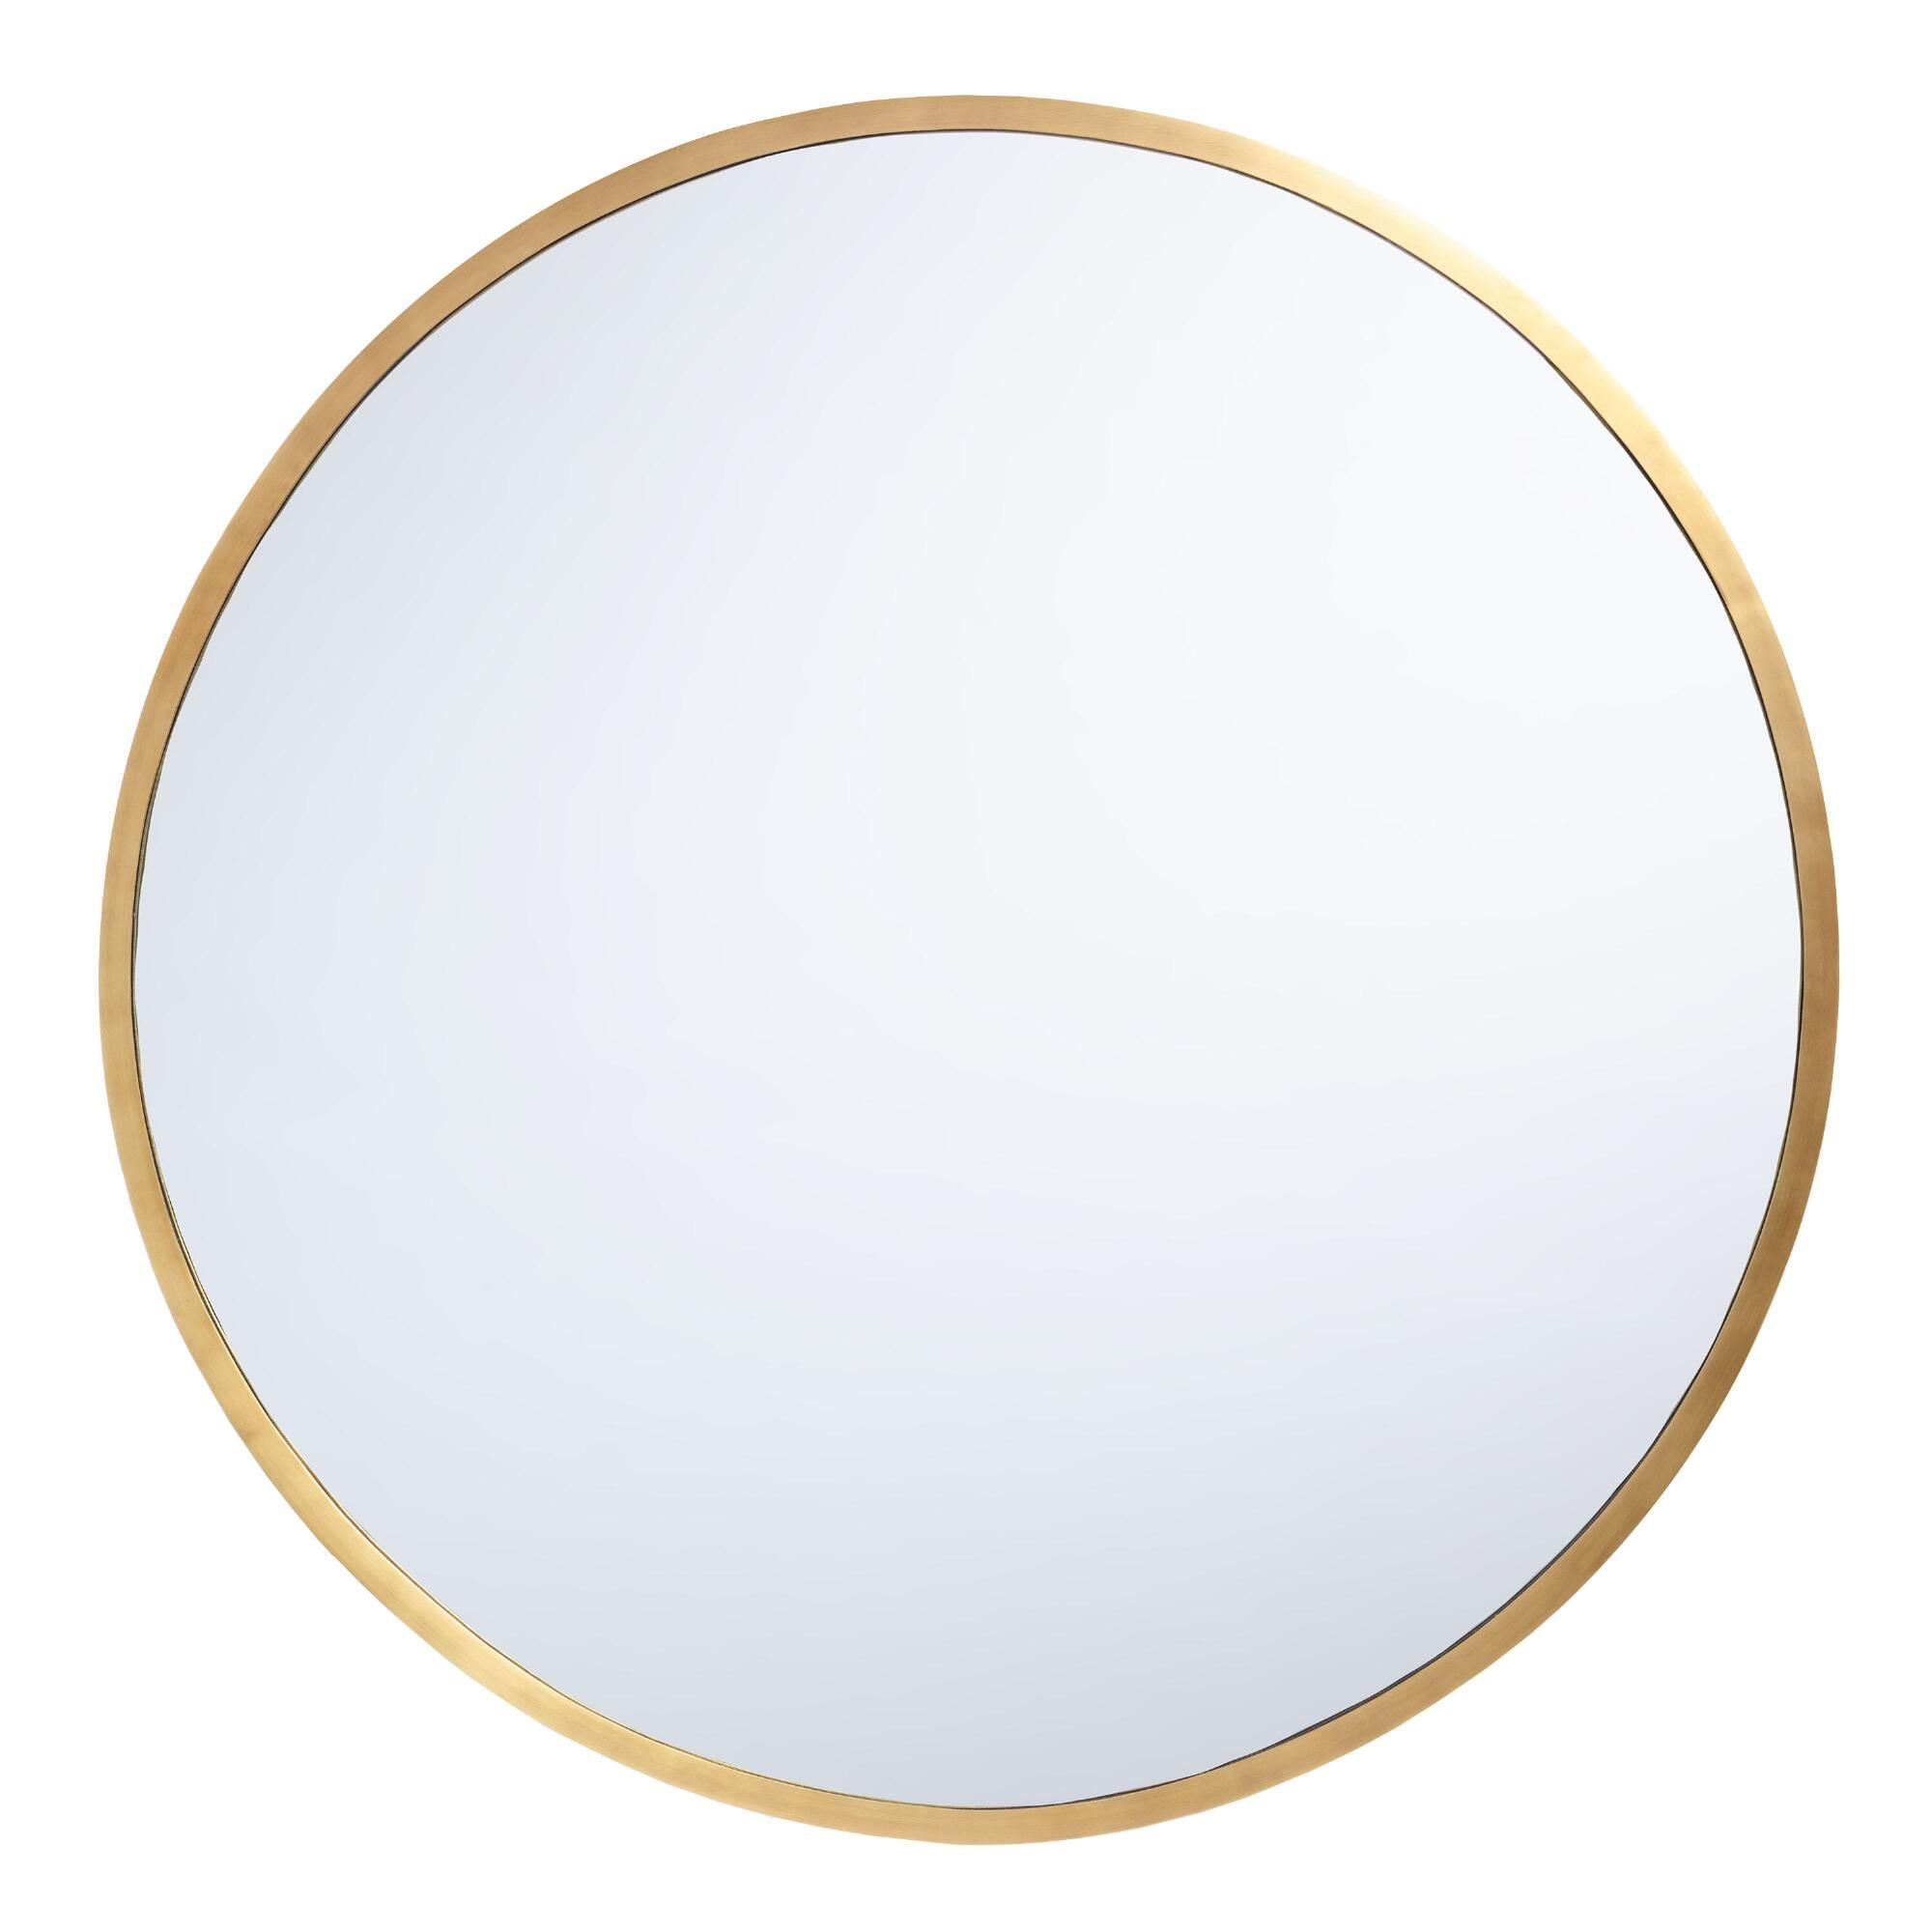 Oversized Round Brass Sana Mirror In 2020 Large Round Wall Mirror Round Gold Mirror Oversized Round Mirror